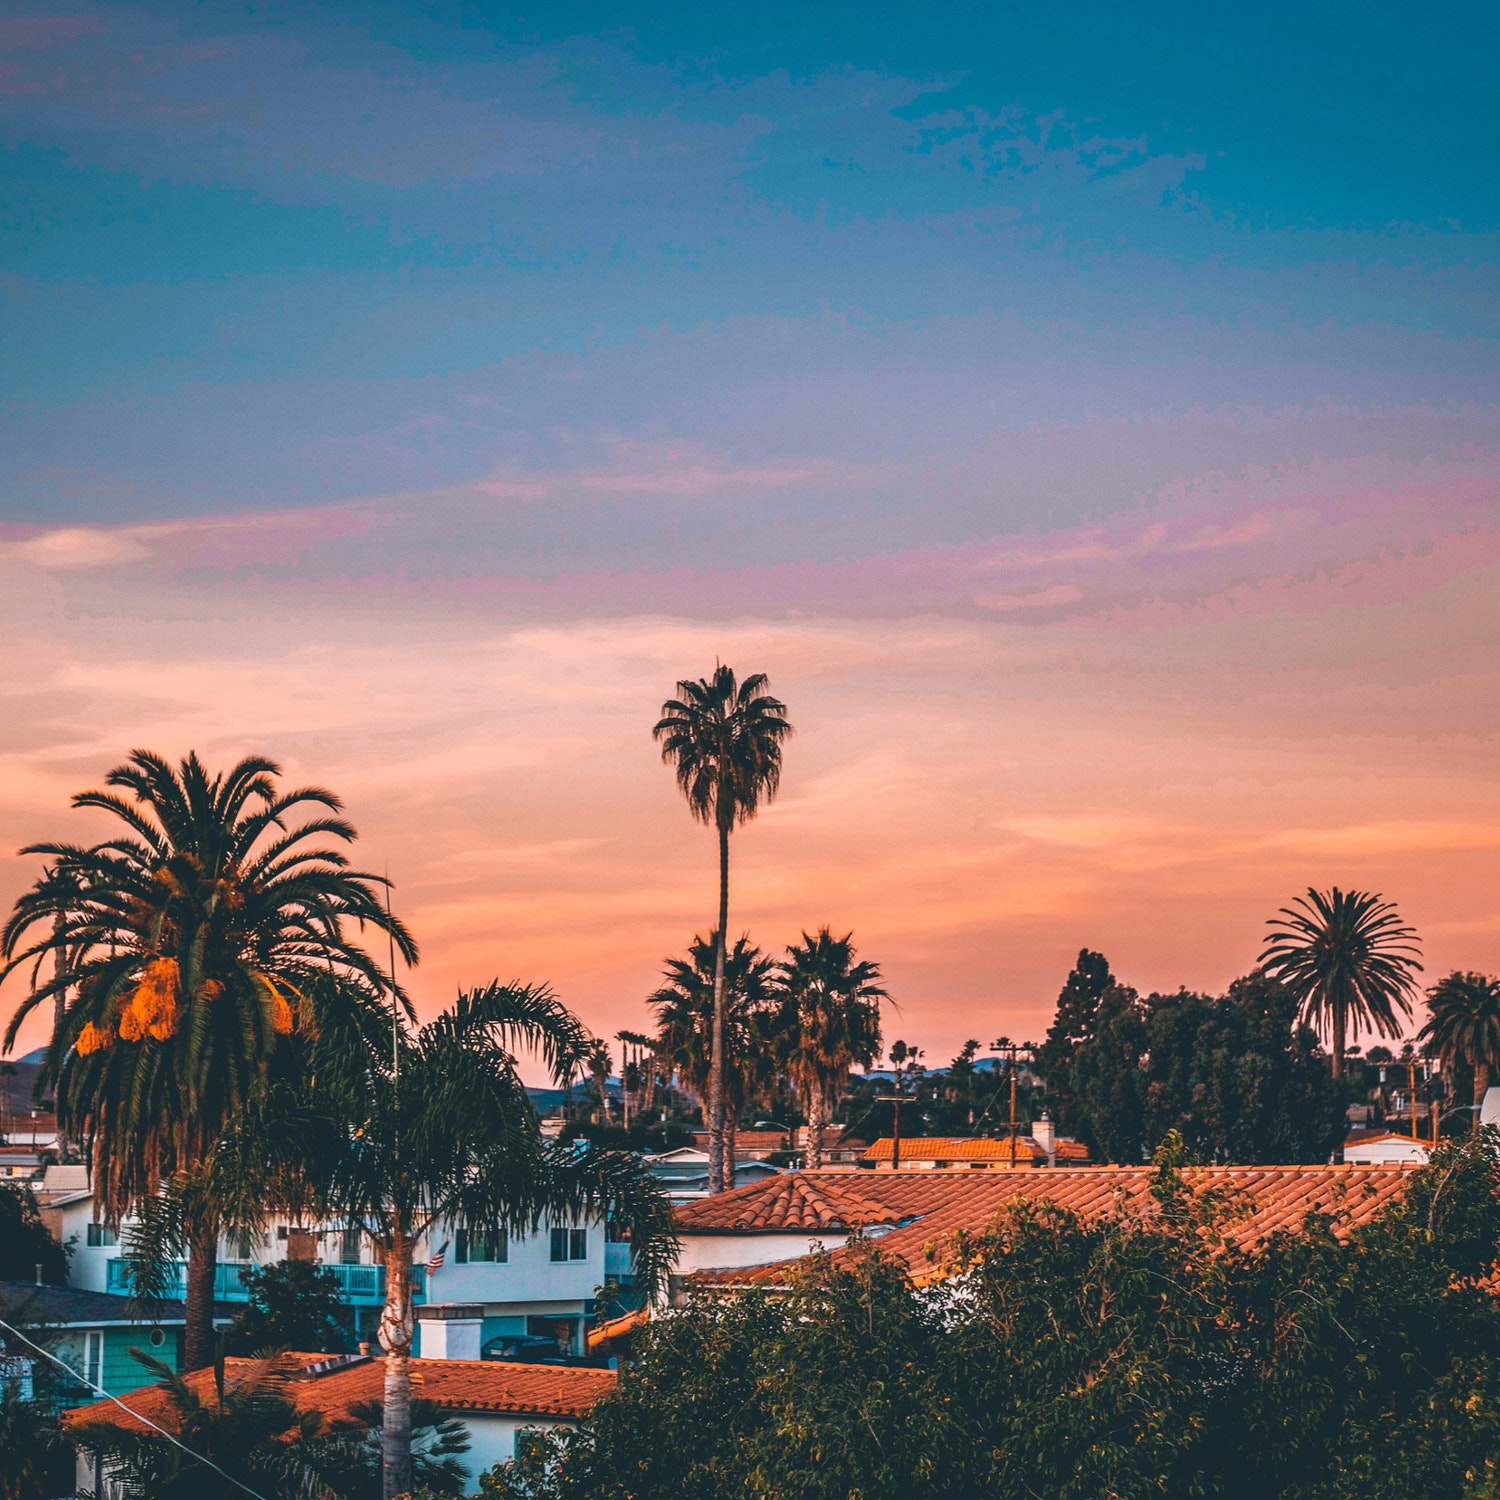 j1-san-diego-palm-trees